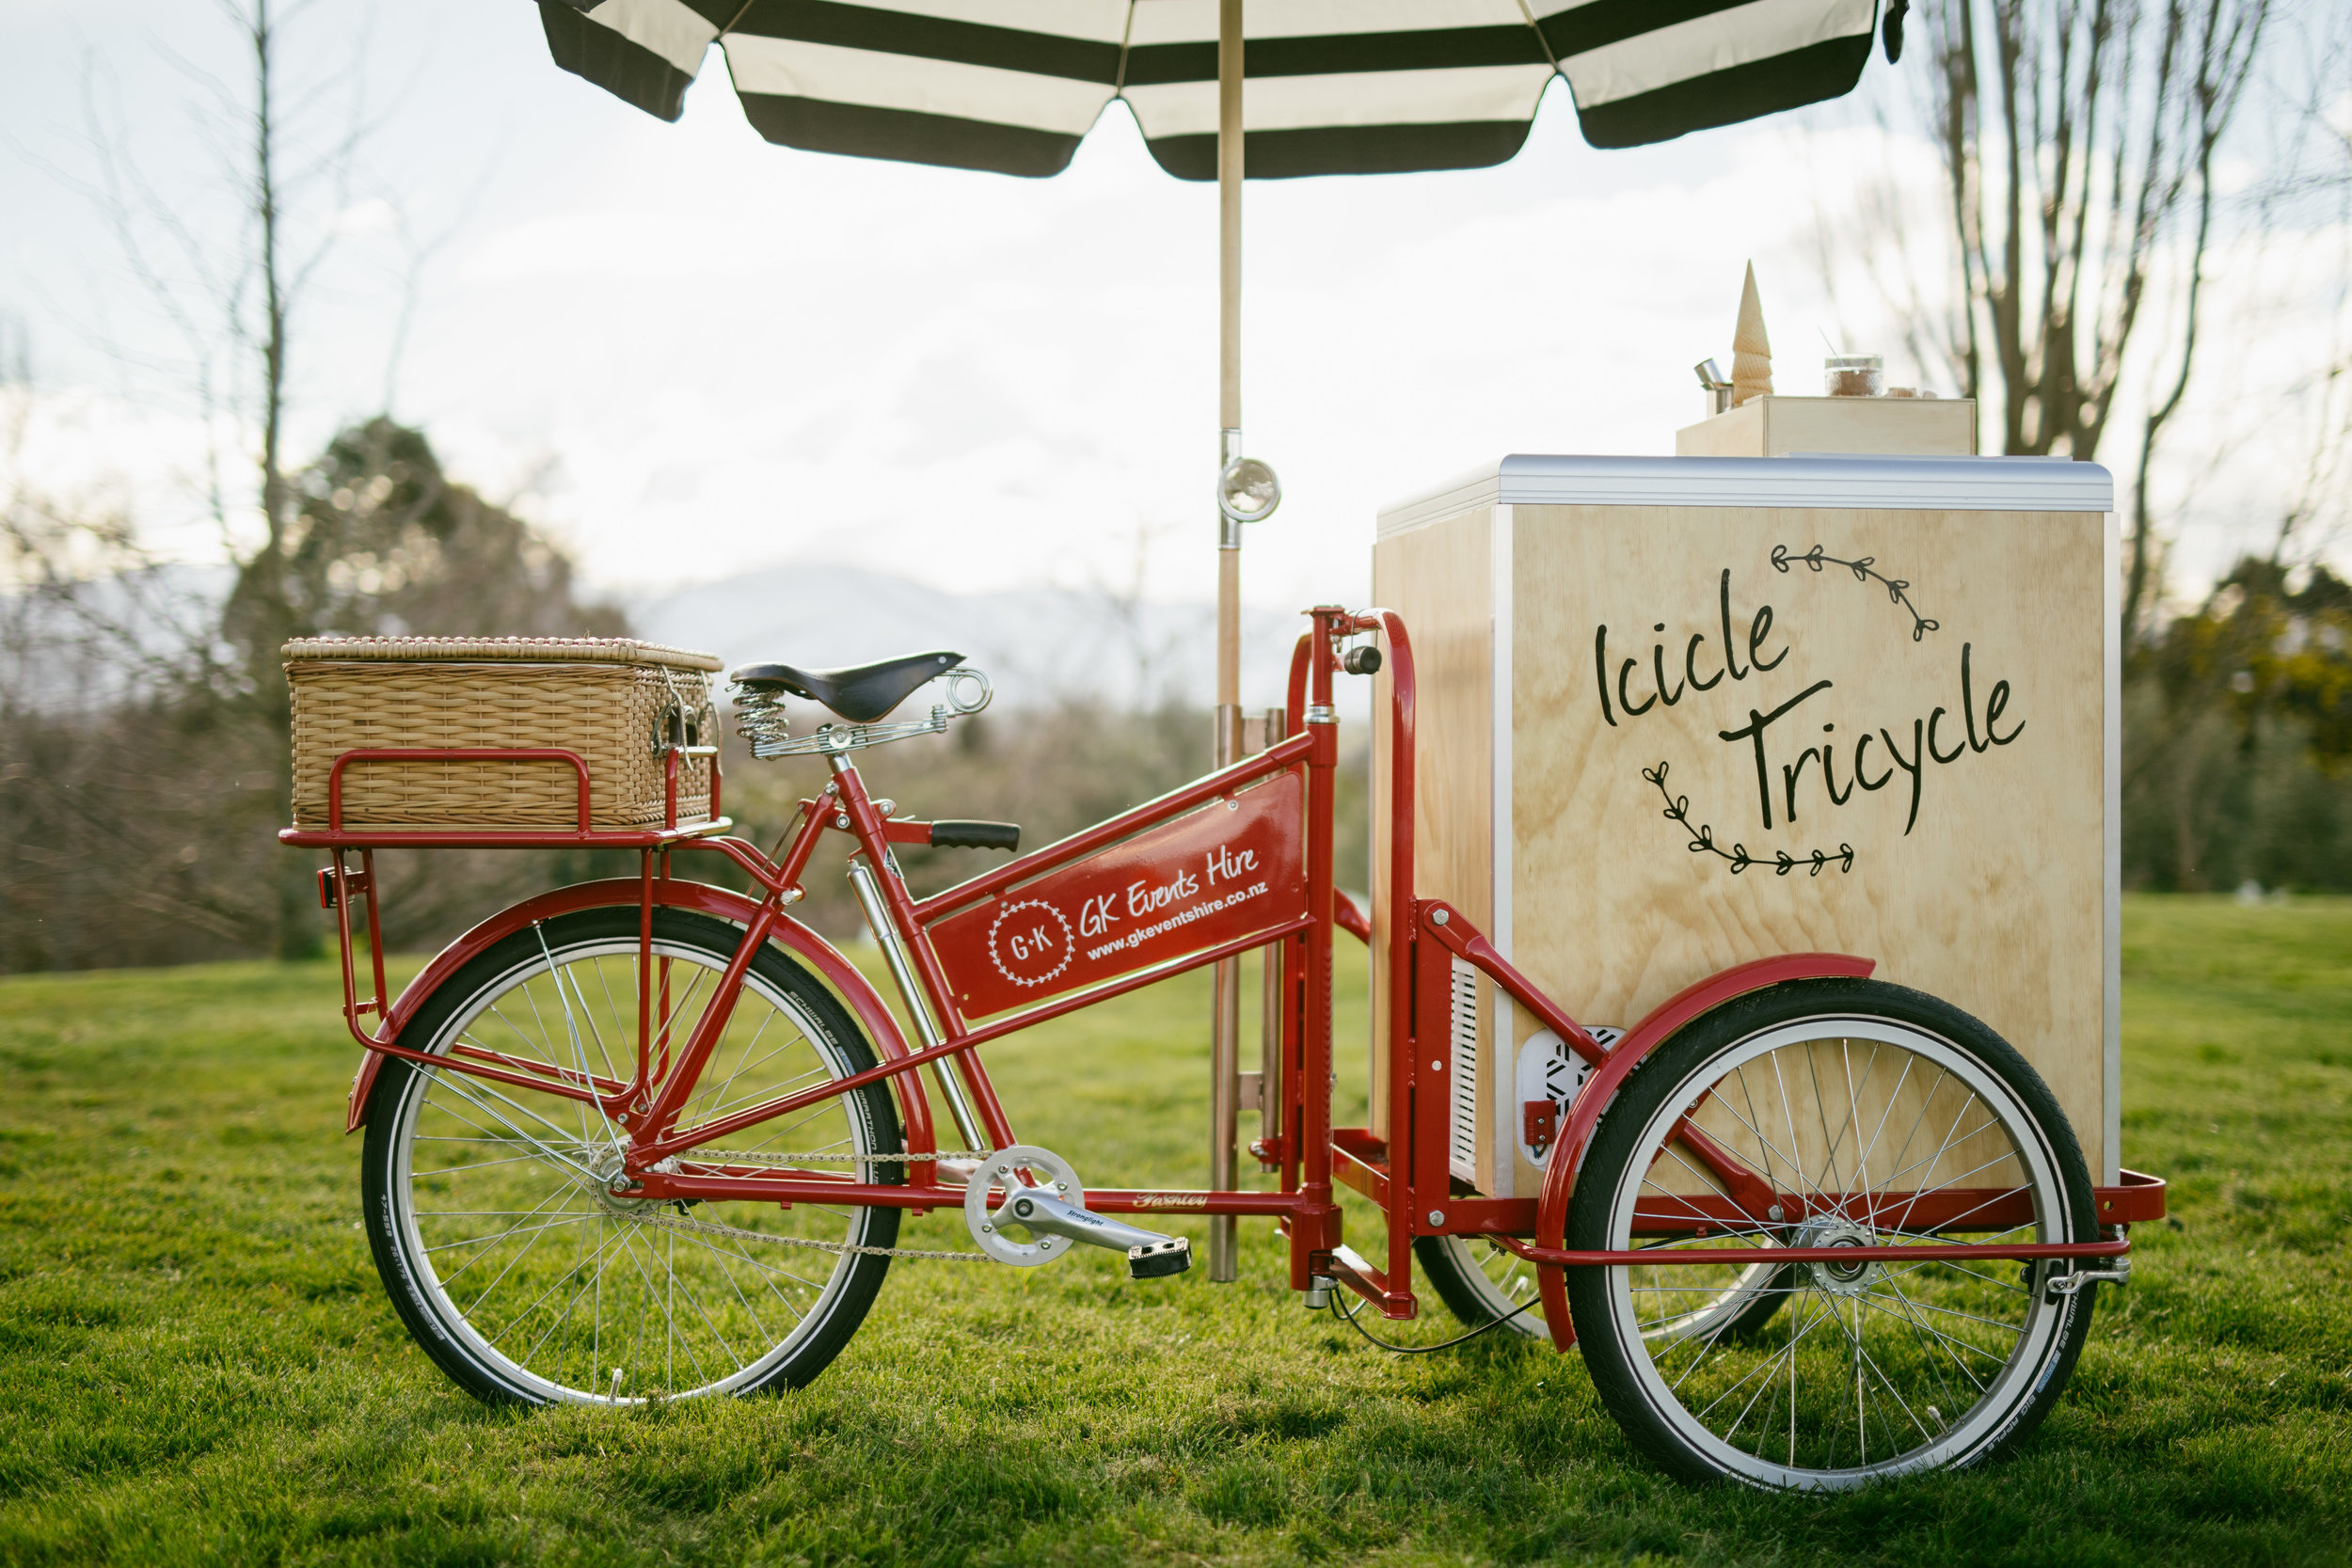 Copy of Icicle Tricycle